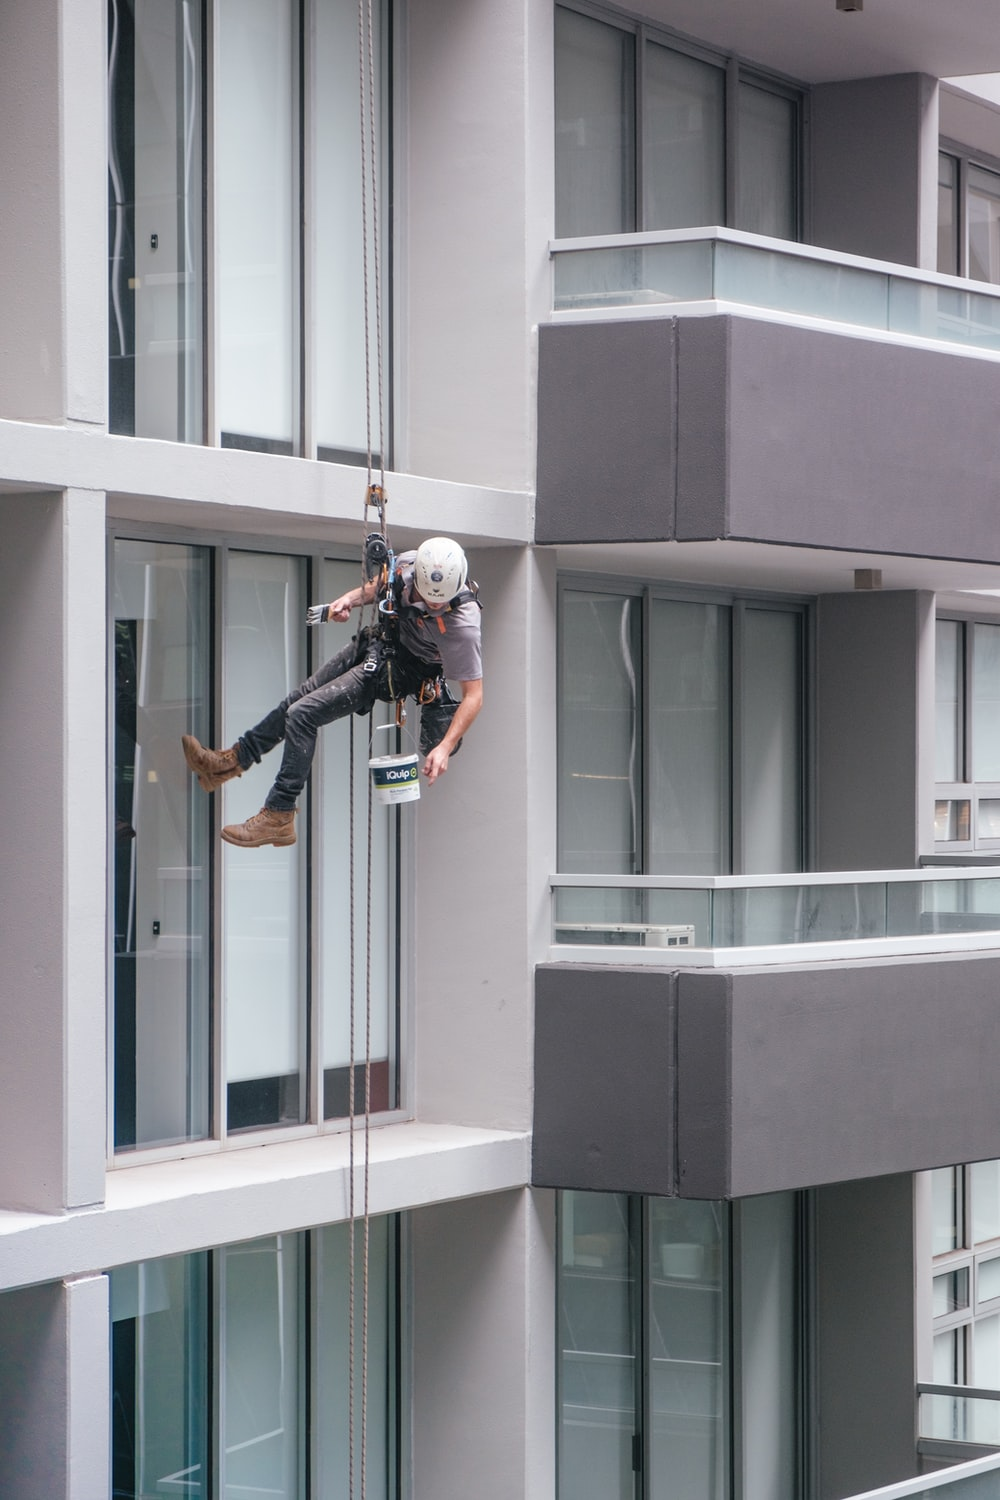 man in black jacket and black pants jumping on window during daytime